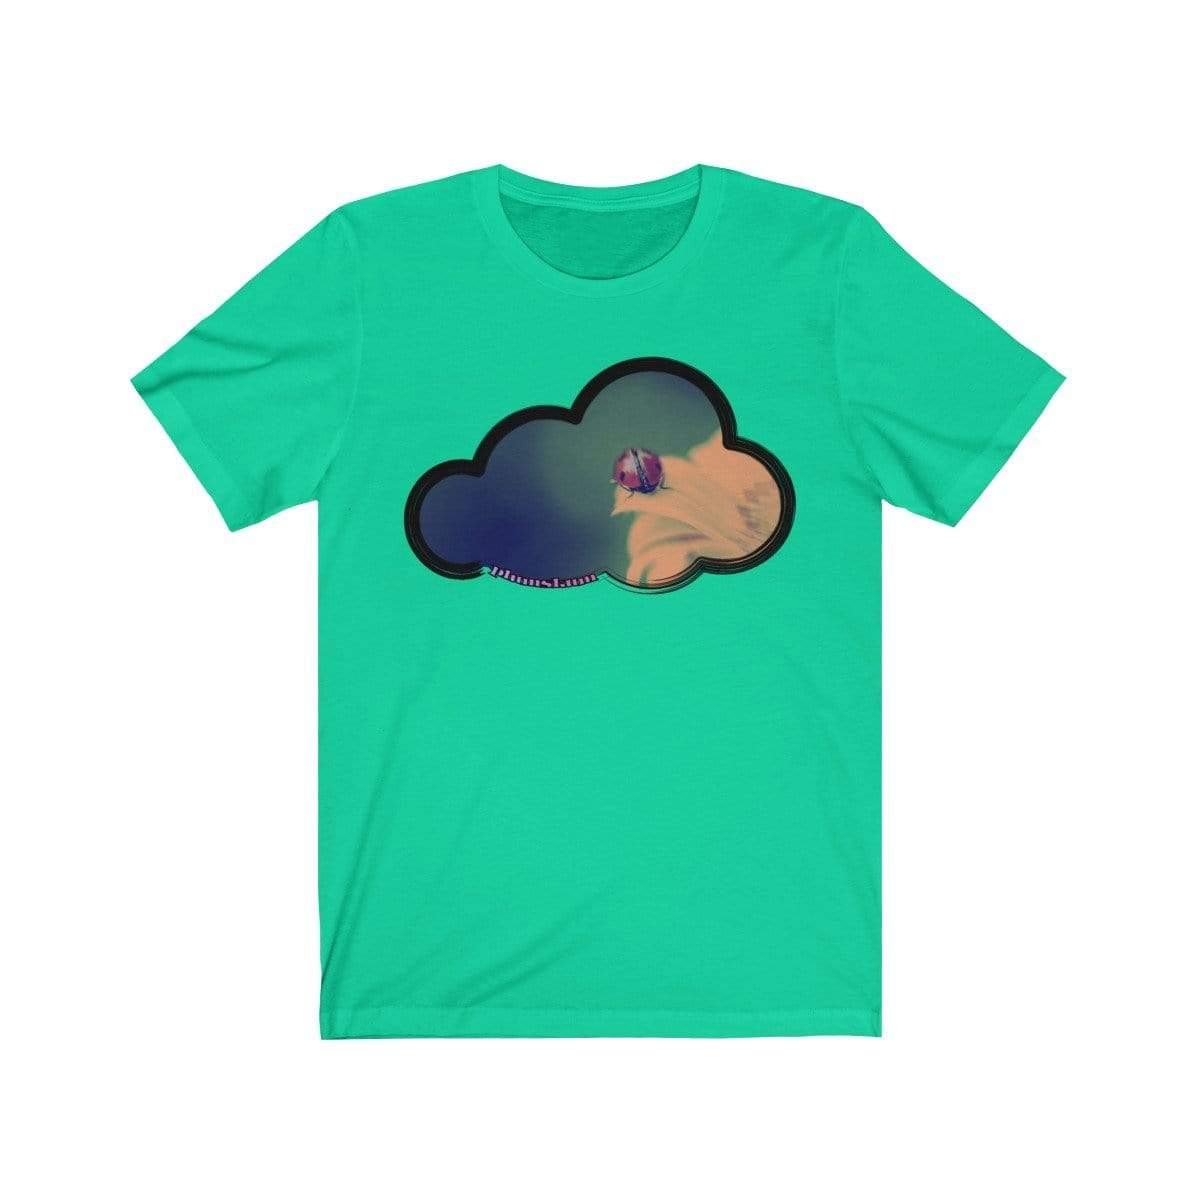 Printify T-Shirt Teal / M Ladybug Art Clouds Tee